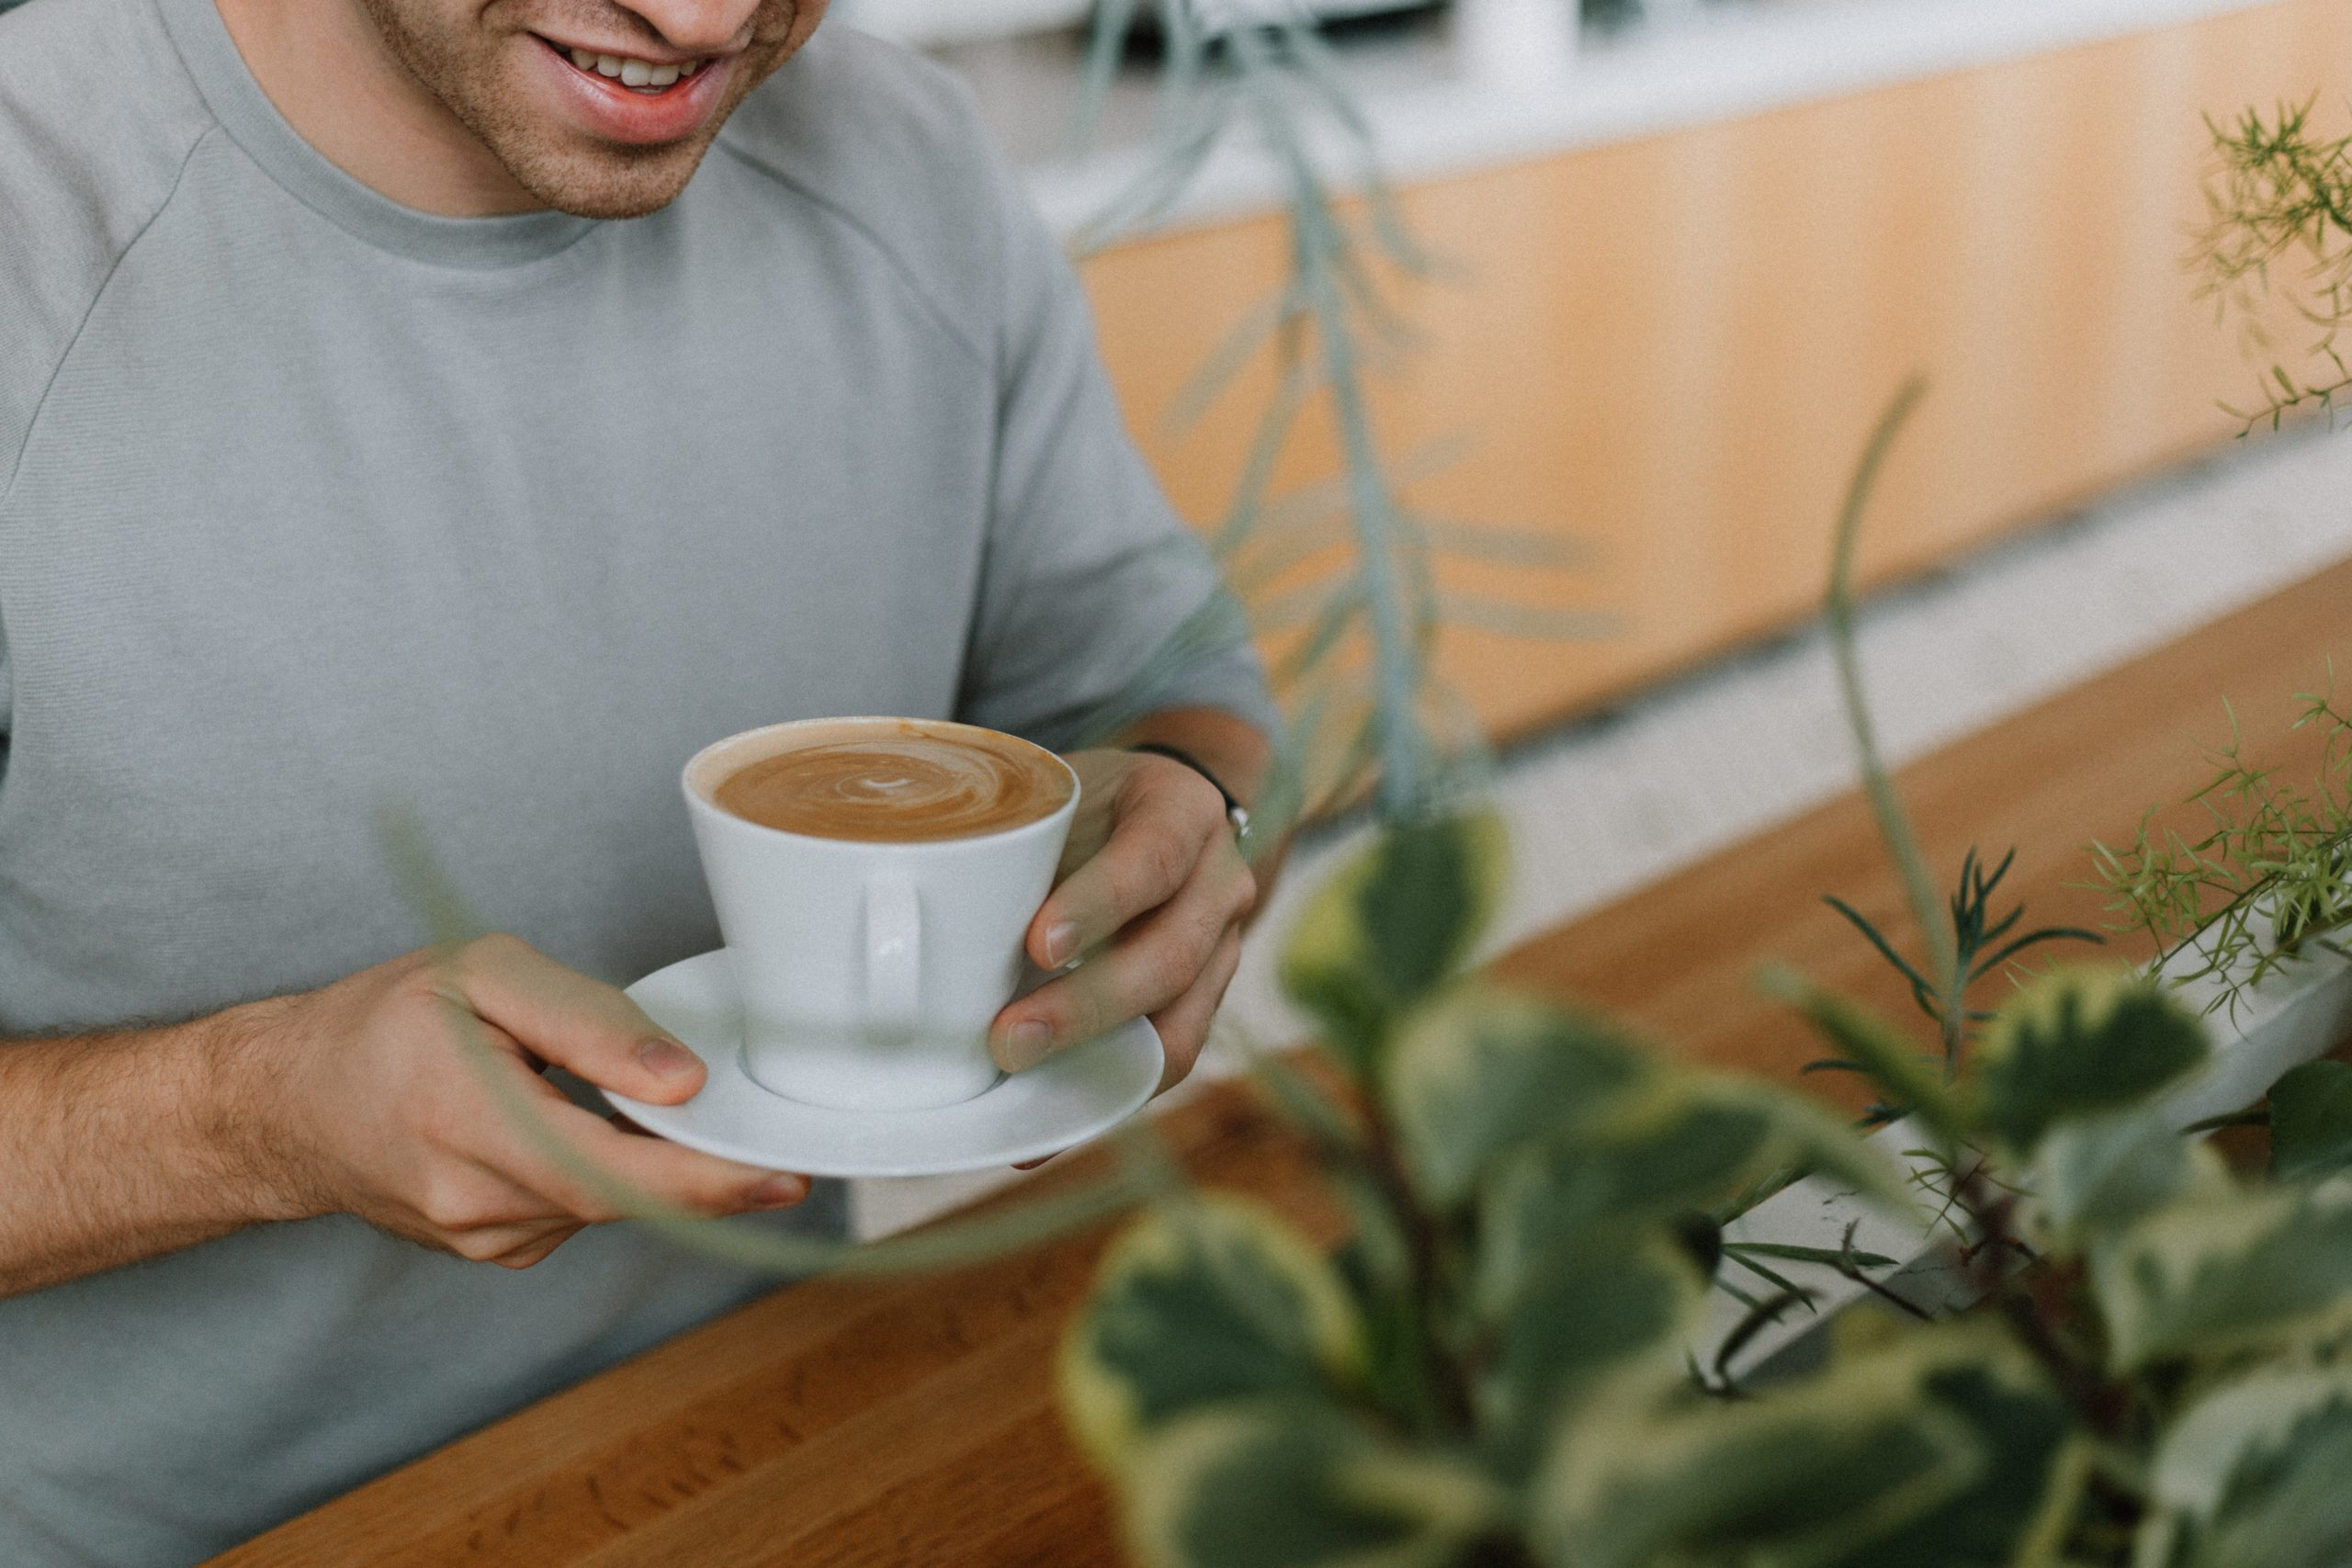 A man holding a cup of coffee